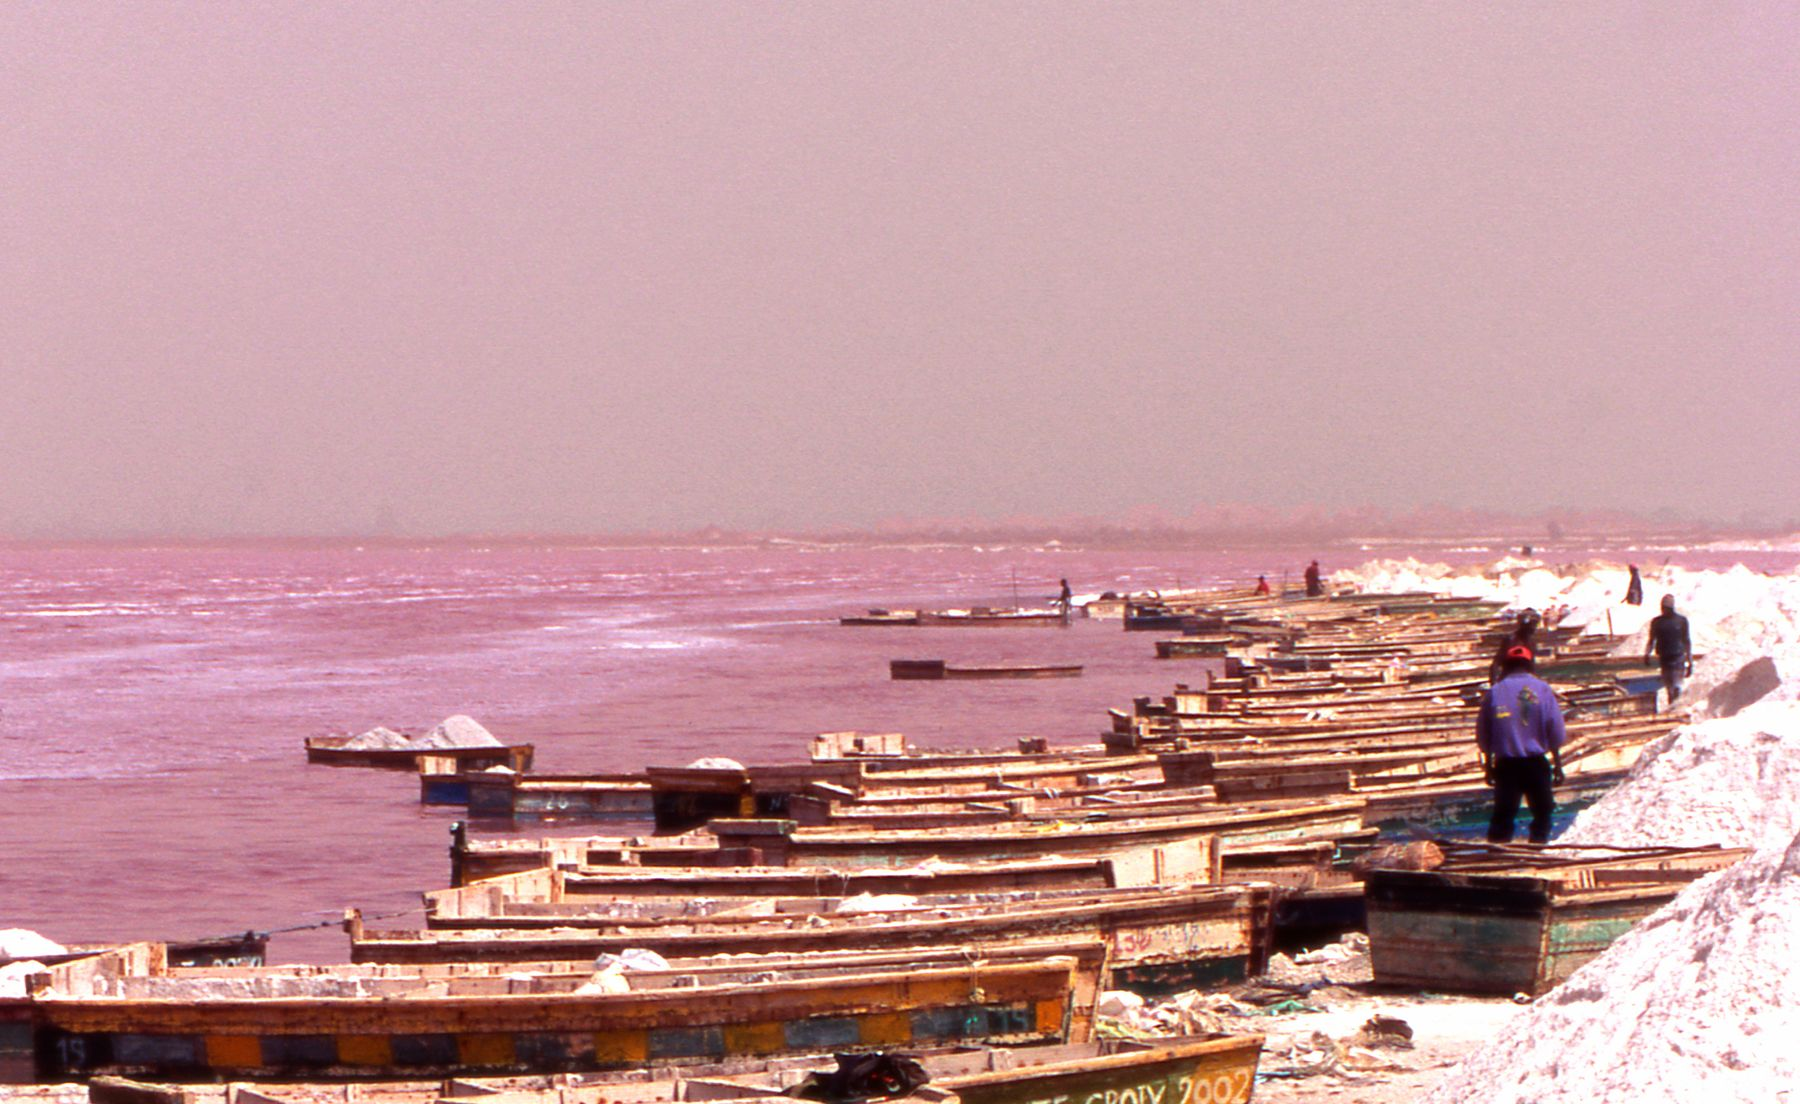 Boats and people working on pink Lake Retba's shores in Senegal